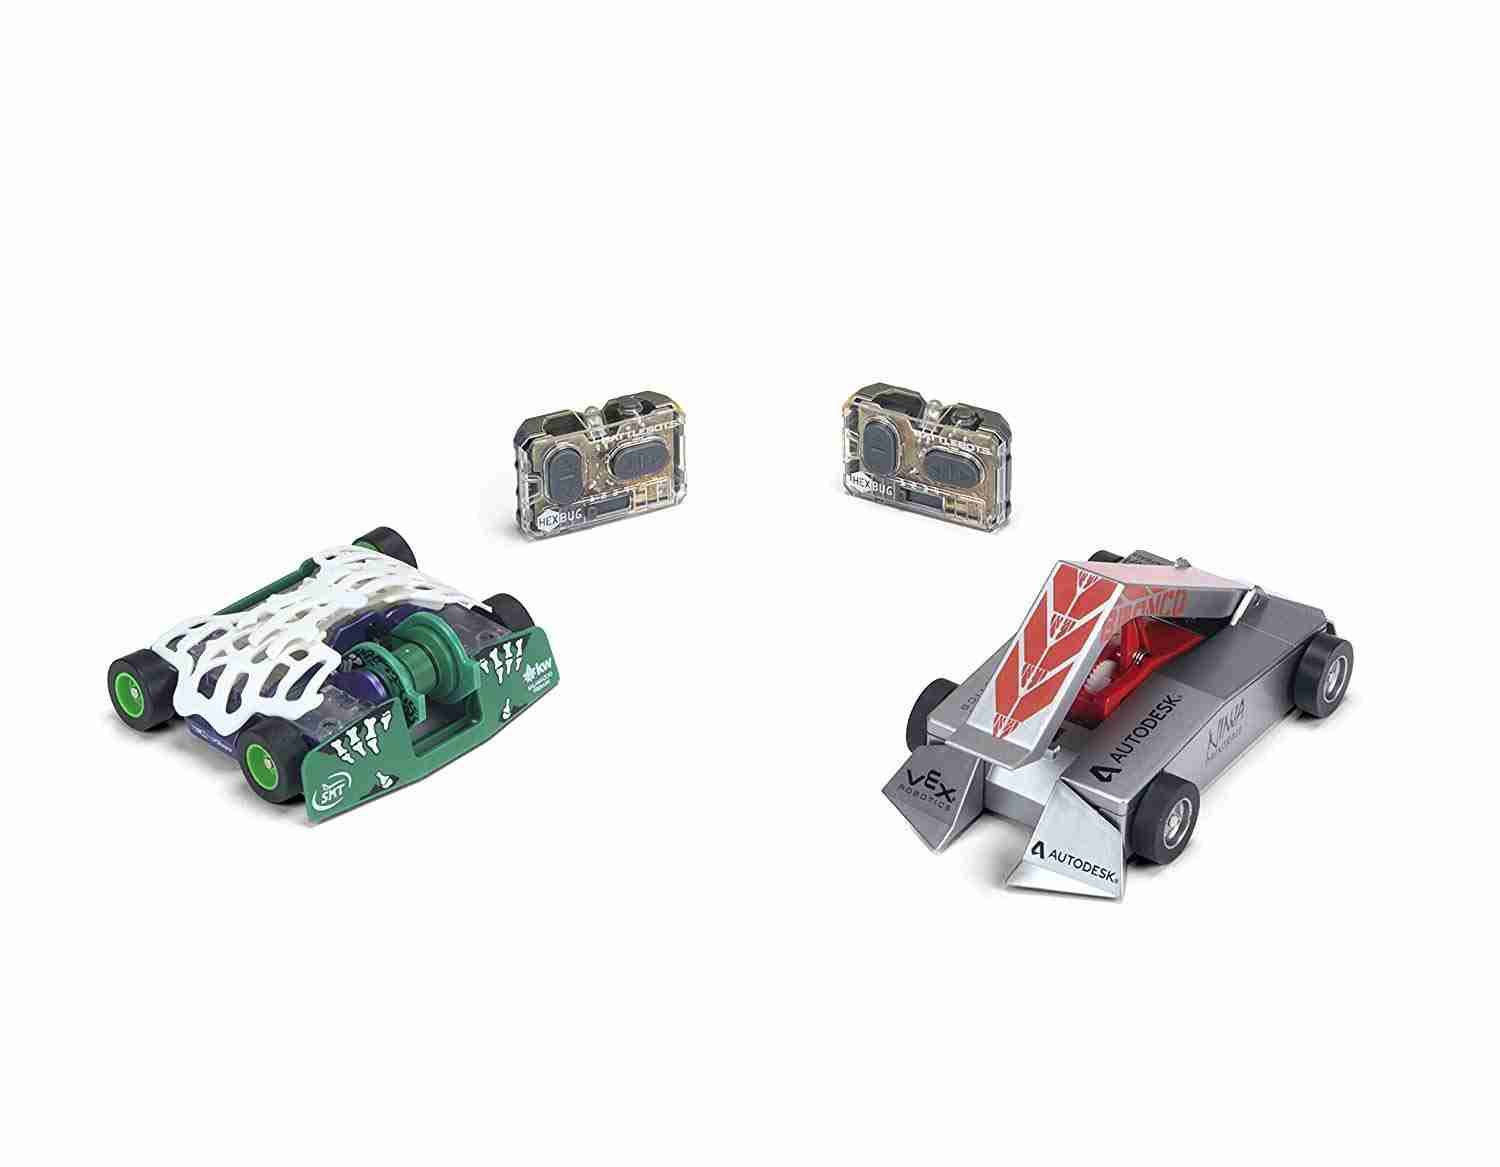 Hexbug BattleBots Rivals (Bronco Witch Doctor)